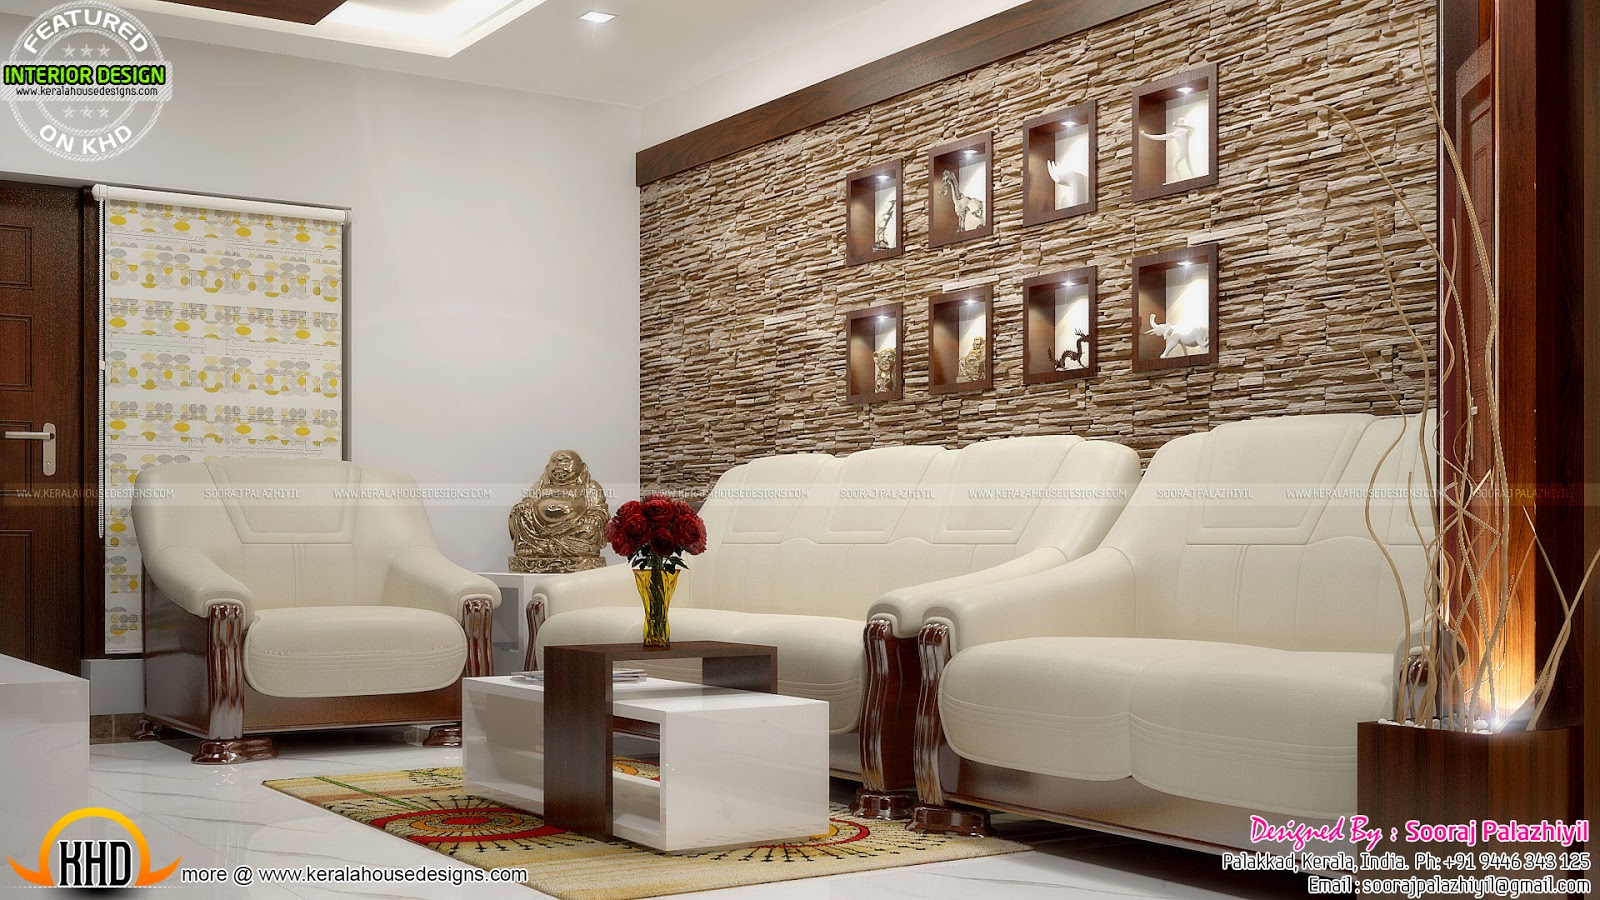 Simple apartment interior in kerala kerala home design Home interior design indian style